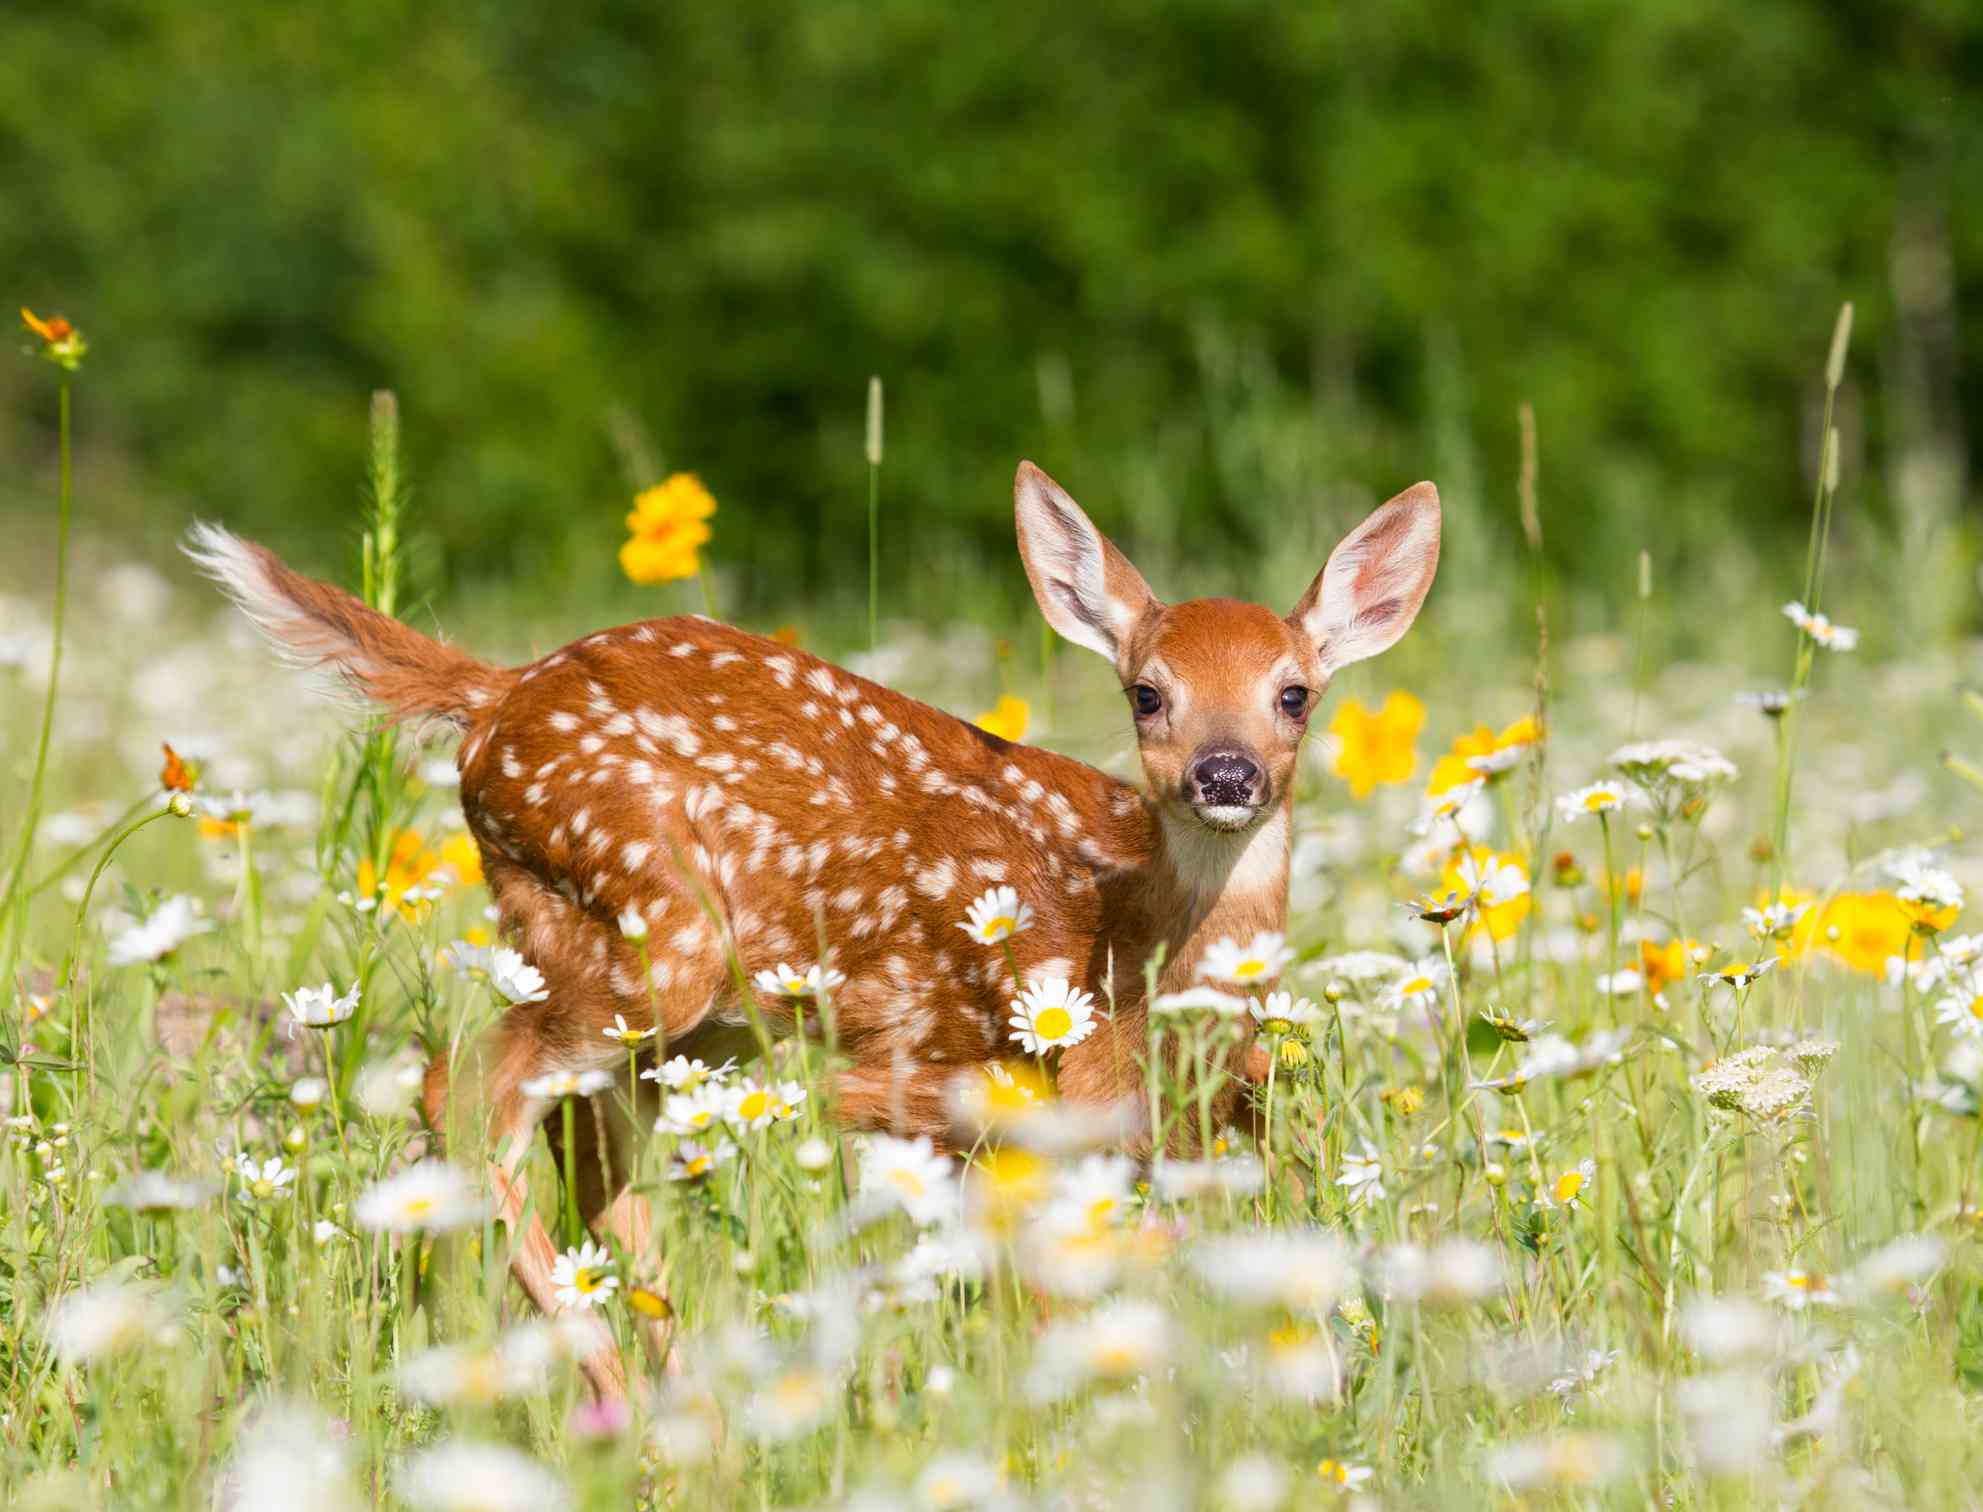 A young white-tailed deer fawn in a meadow